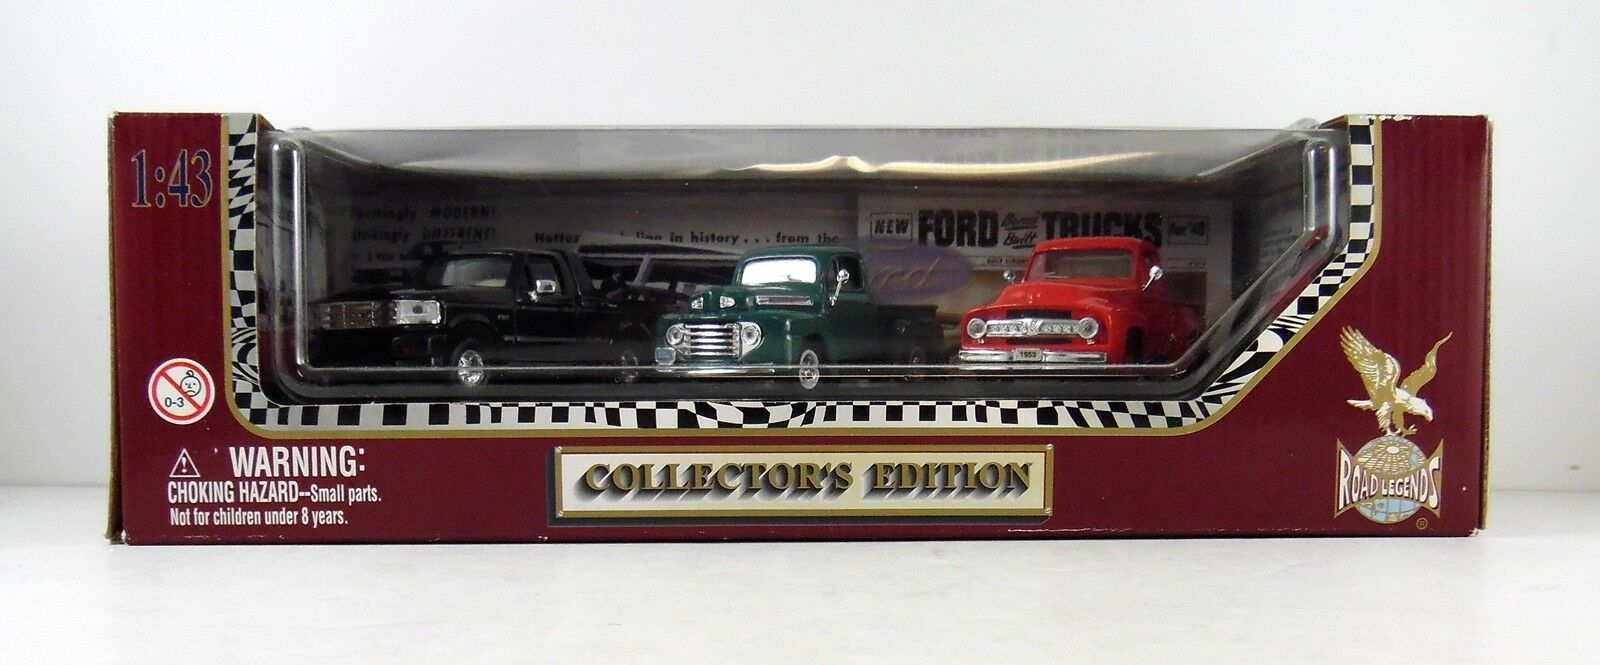 Road Legends Collectors Collectors Collectors Edition (3) 1 43 Escala Modelo Pastillas 321475